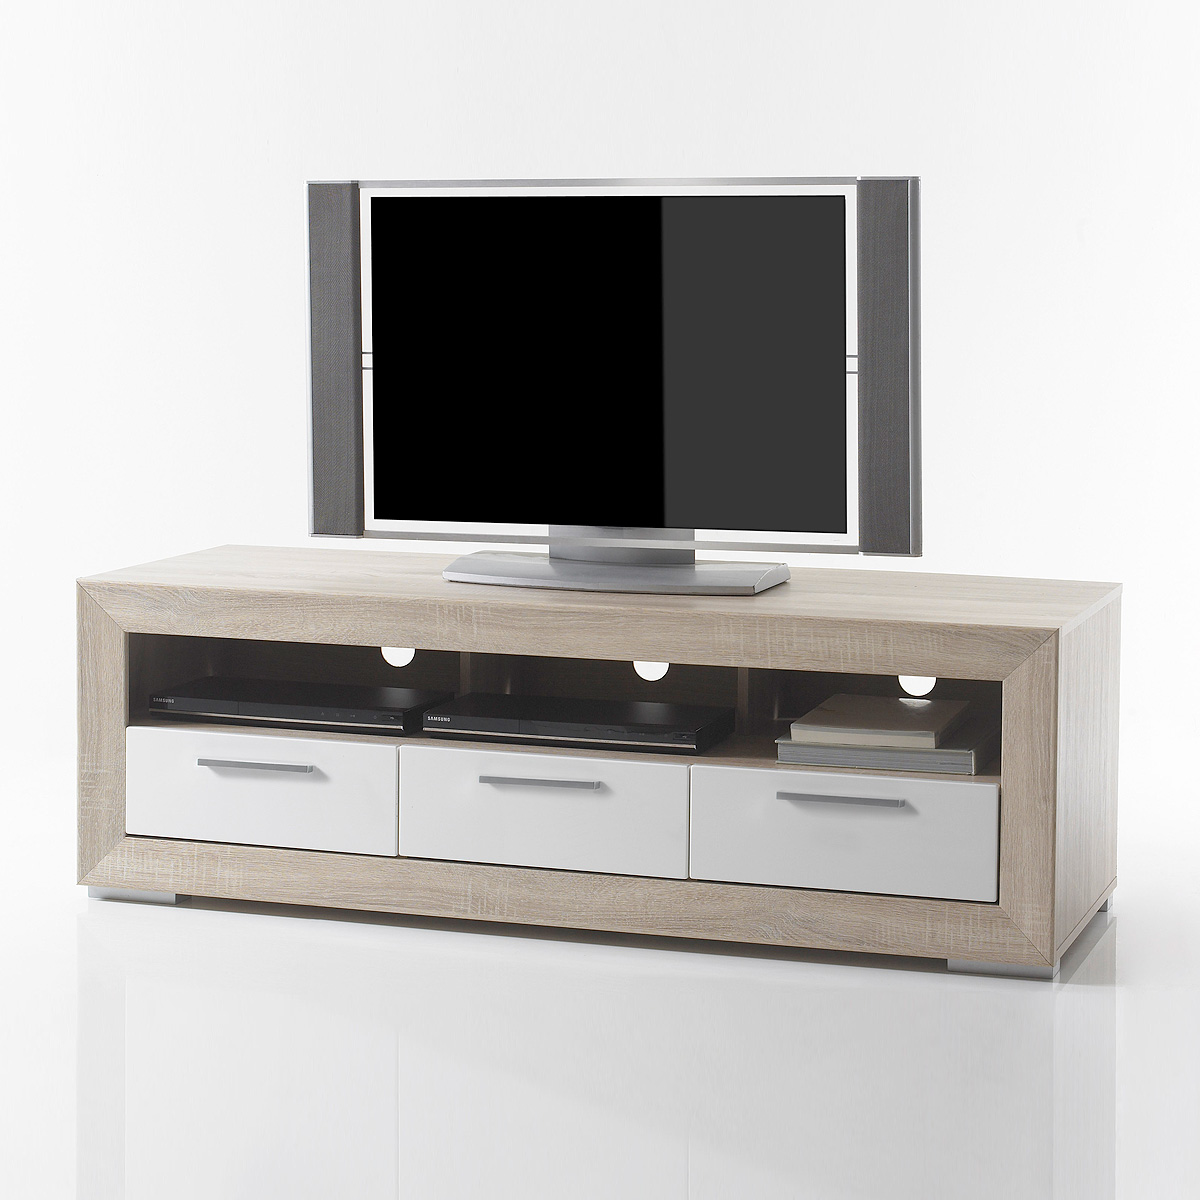 tv board 2 fernando lowboard unterschrank sonoma eiche wei hochglanz ebay. Black Bedroom Furniture Sets. Home Design Ideas